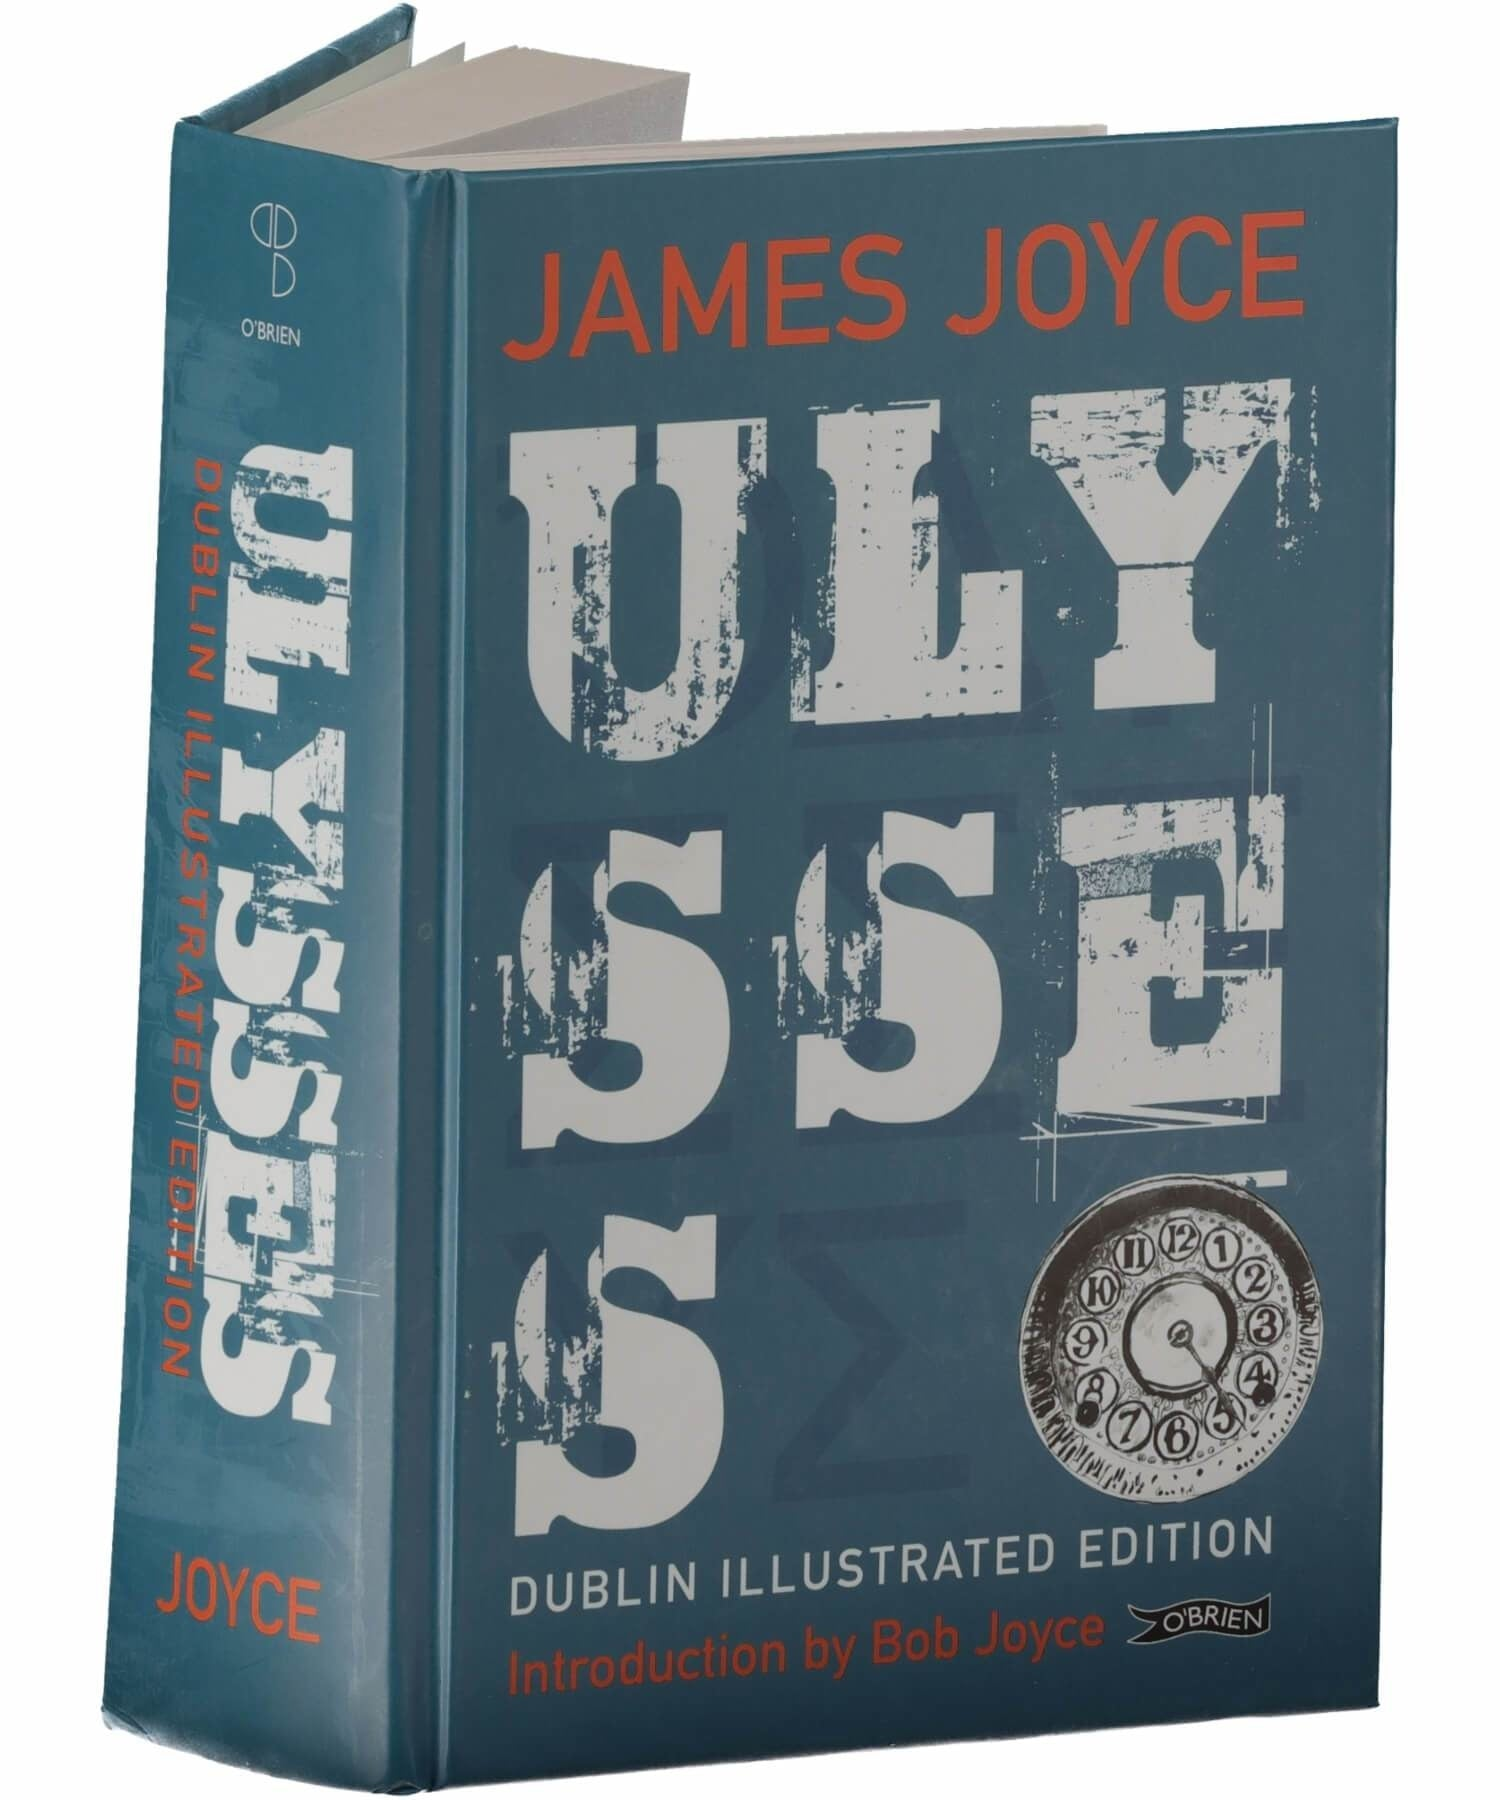 Ulysses The OBrien Press Books